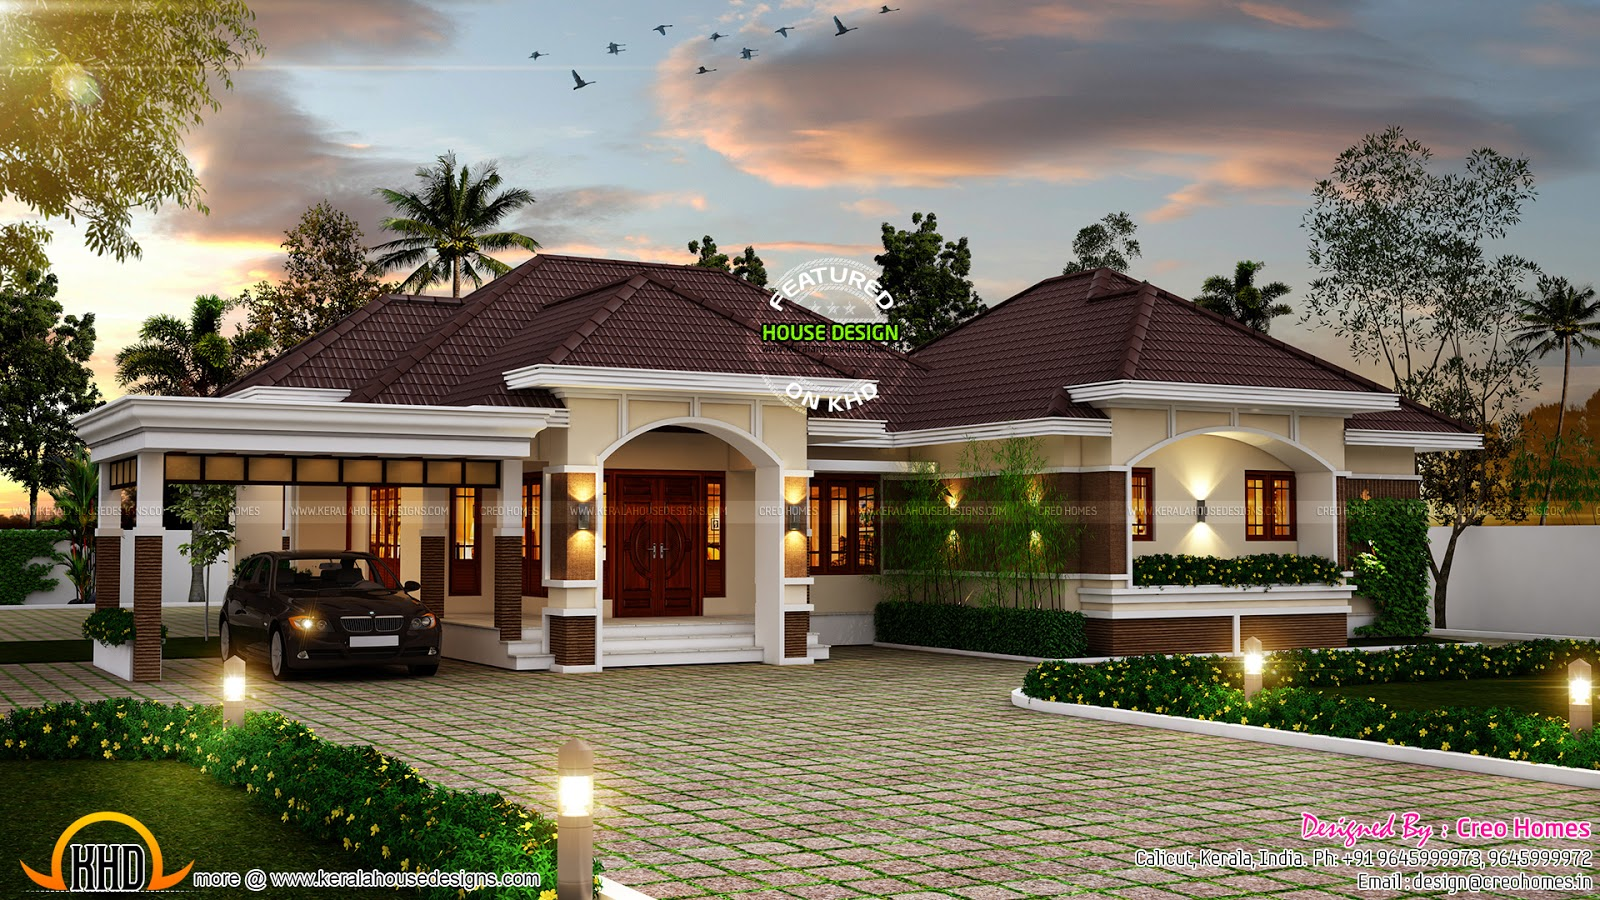 Outstanding bungalow in kerala kerala home design and for Home plan in kerala